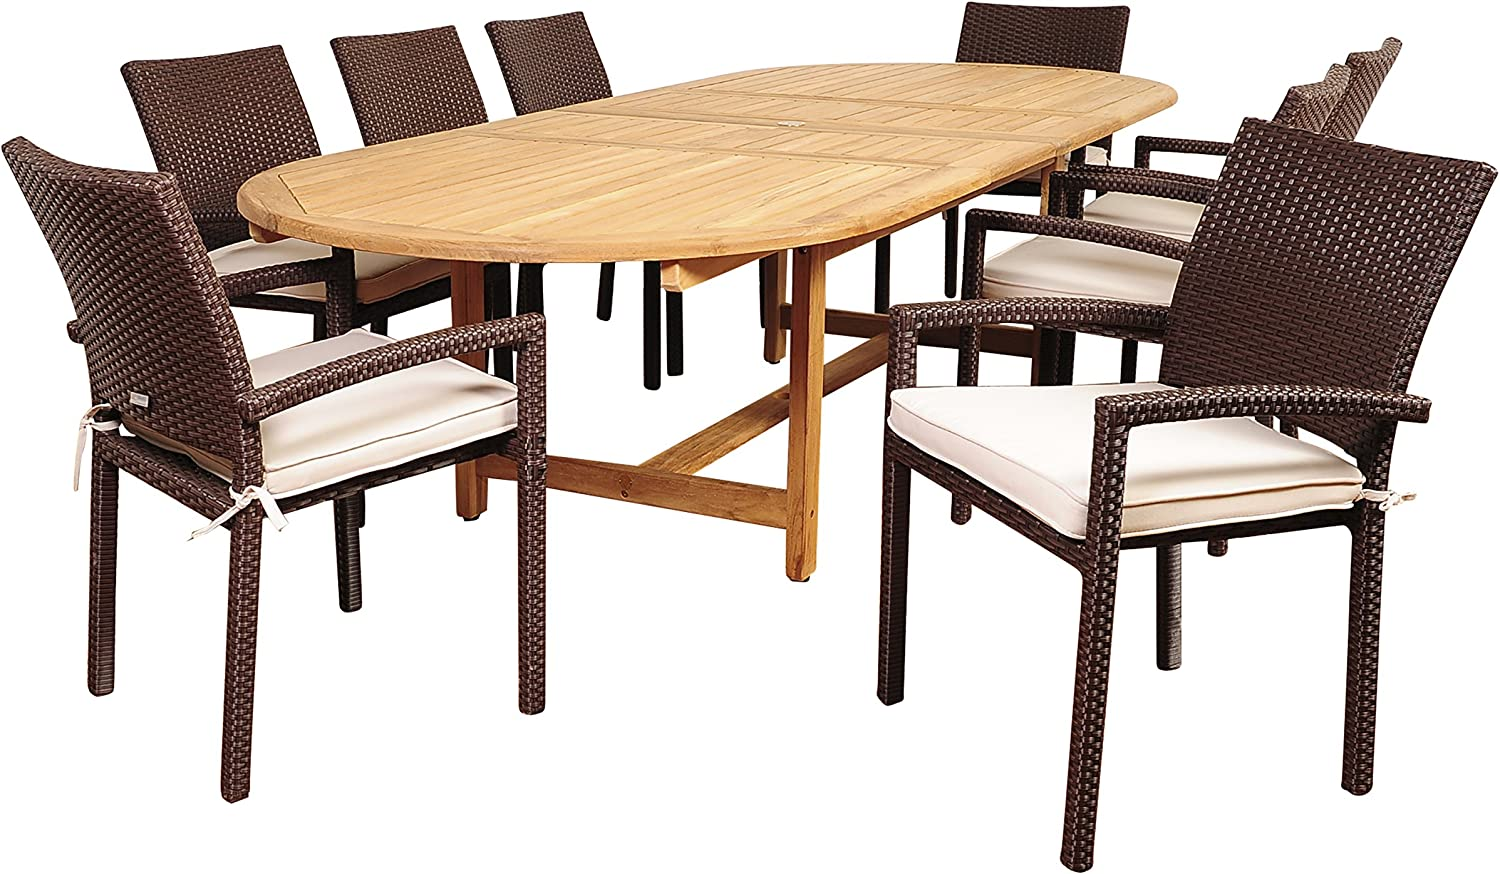 Amazonia Clayton 9 Piece Teak/Wicker Double Extendable Oval Dining Set with Off-White Cushions